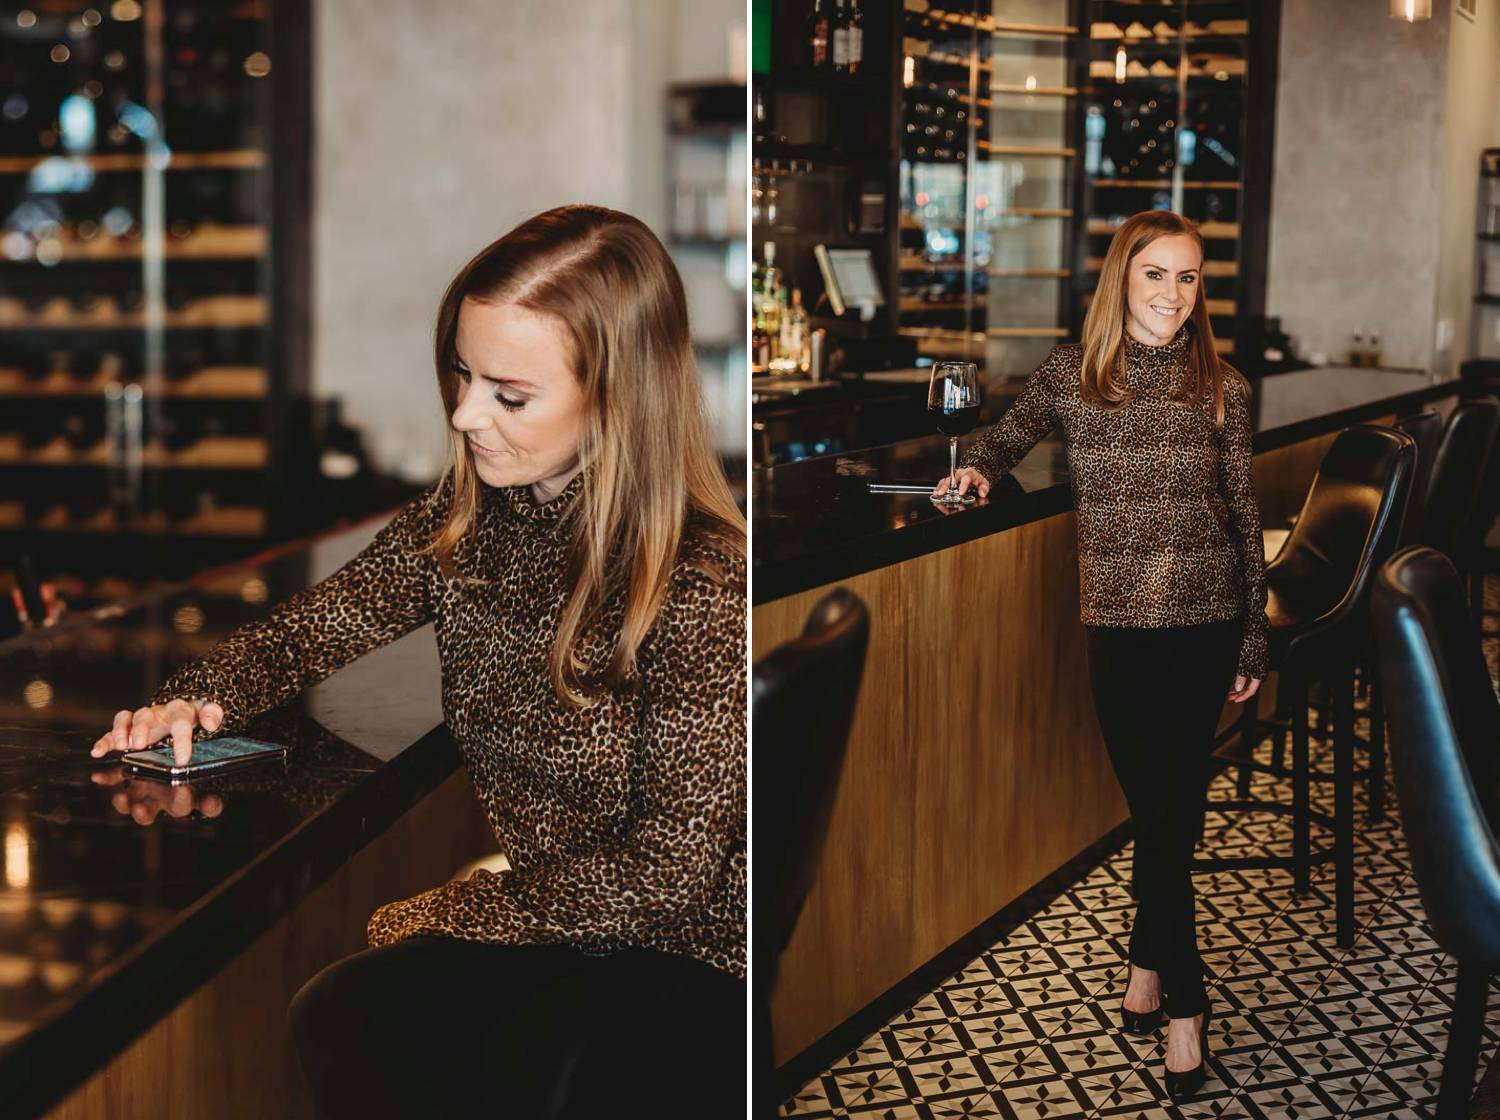 A woman sits at a wine bar in her work attire as she answers emails on her smartphone